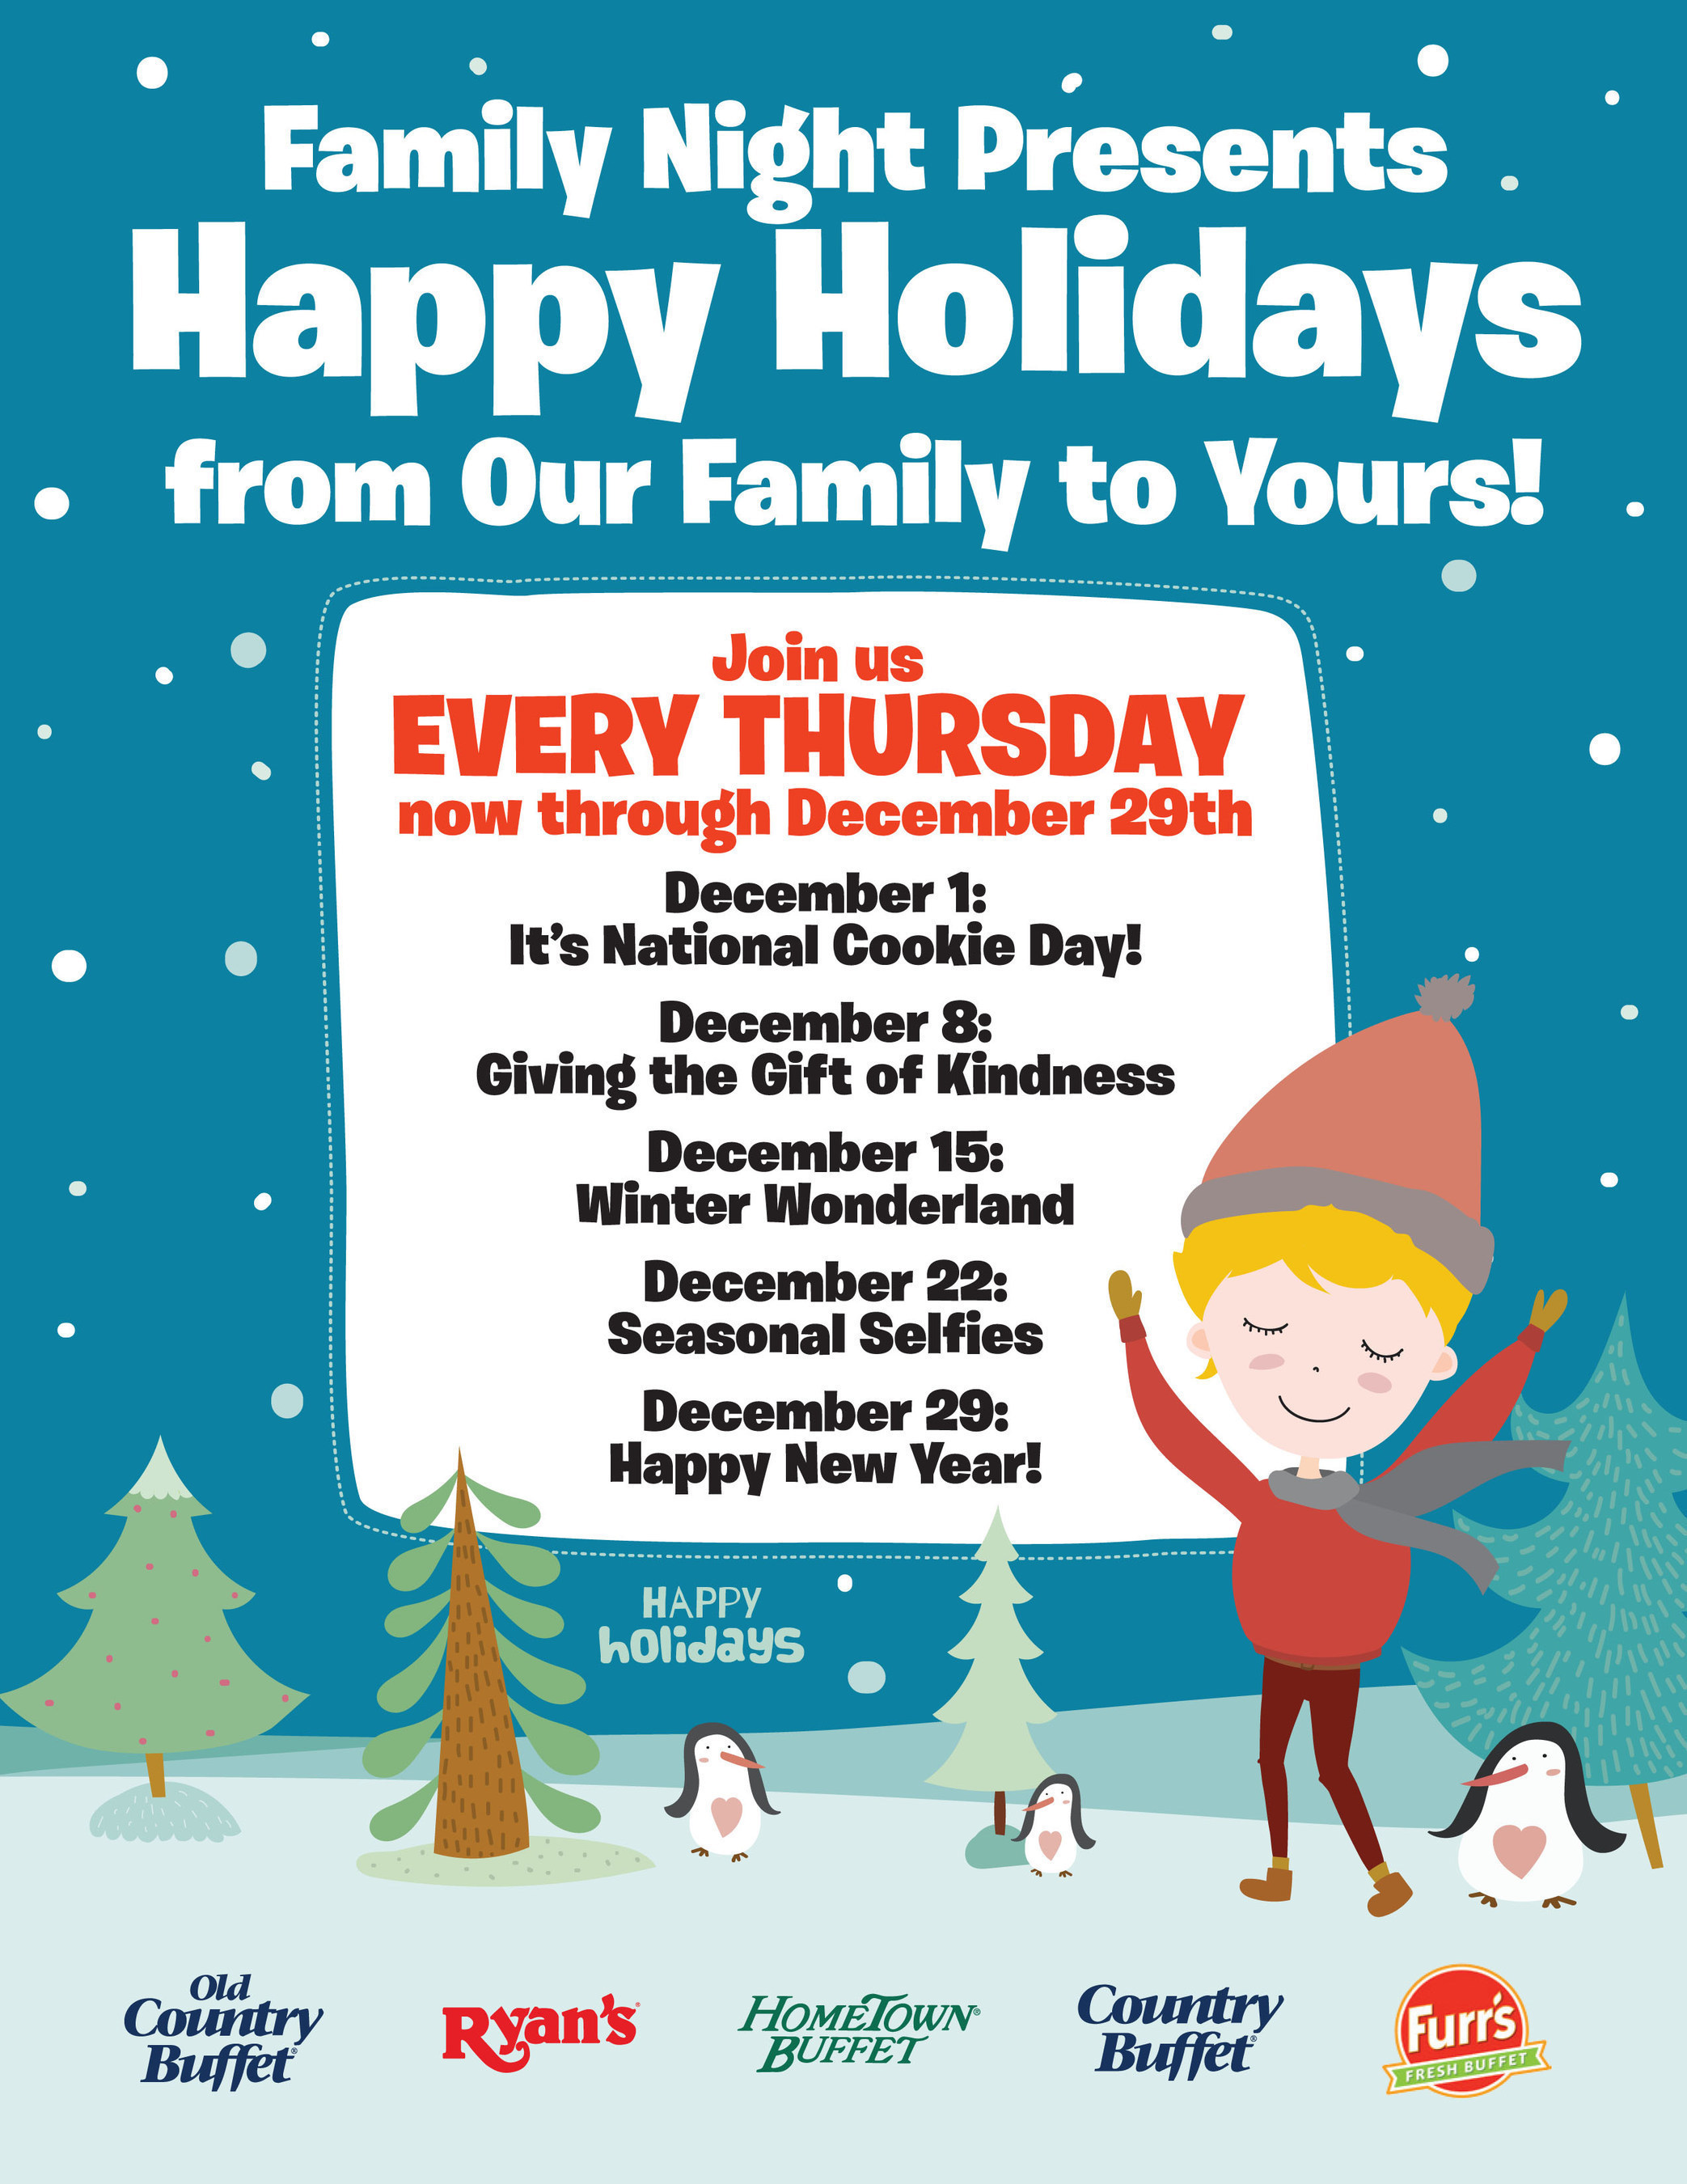 Ovation Brands and Furr's Fresh Buffet wish you happy holidays with Family Nights from December 1st through December 29th.